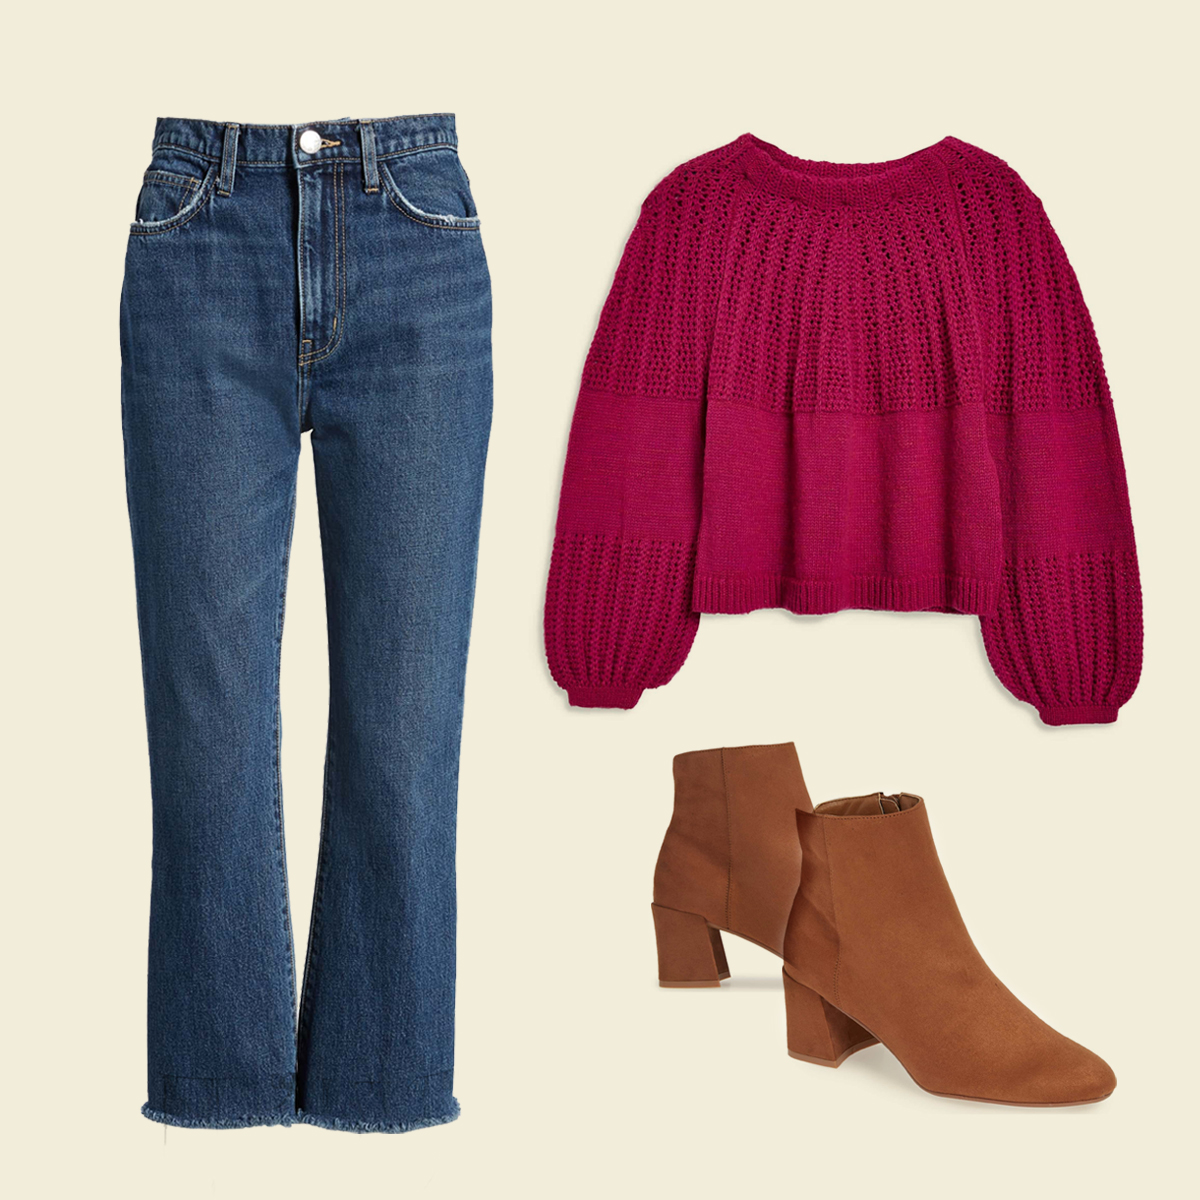 Kick-flare jeans, sweater, and tan boots.